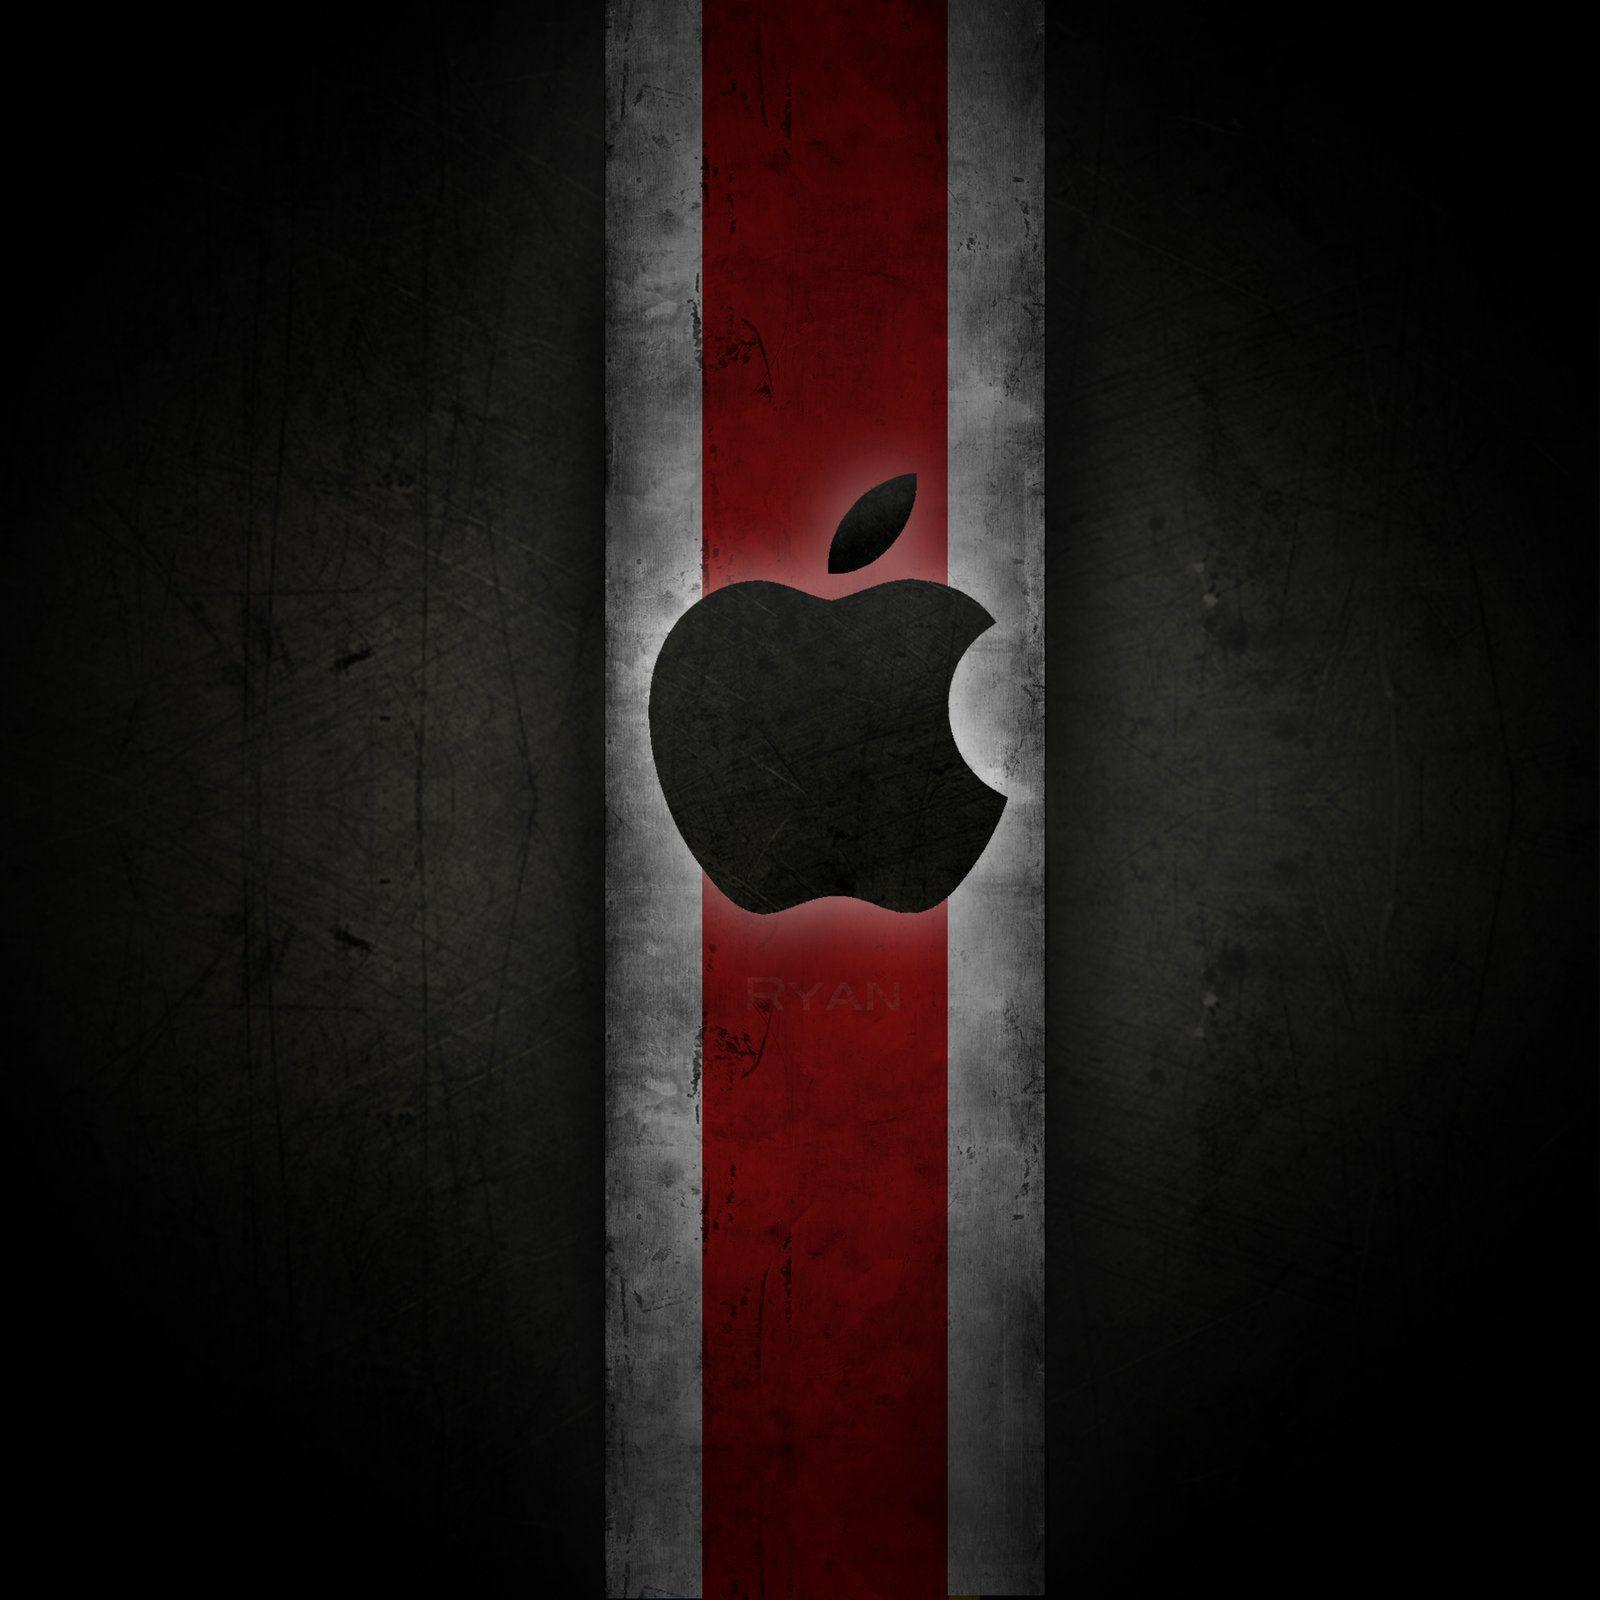 Apple Wallpapers by GloriousRyan